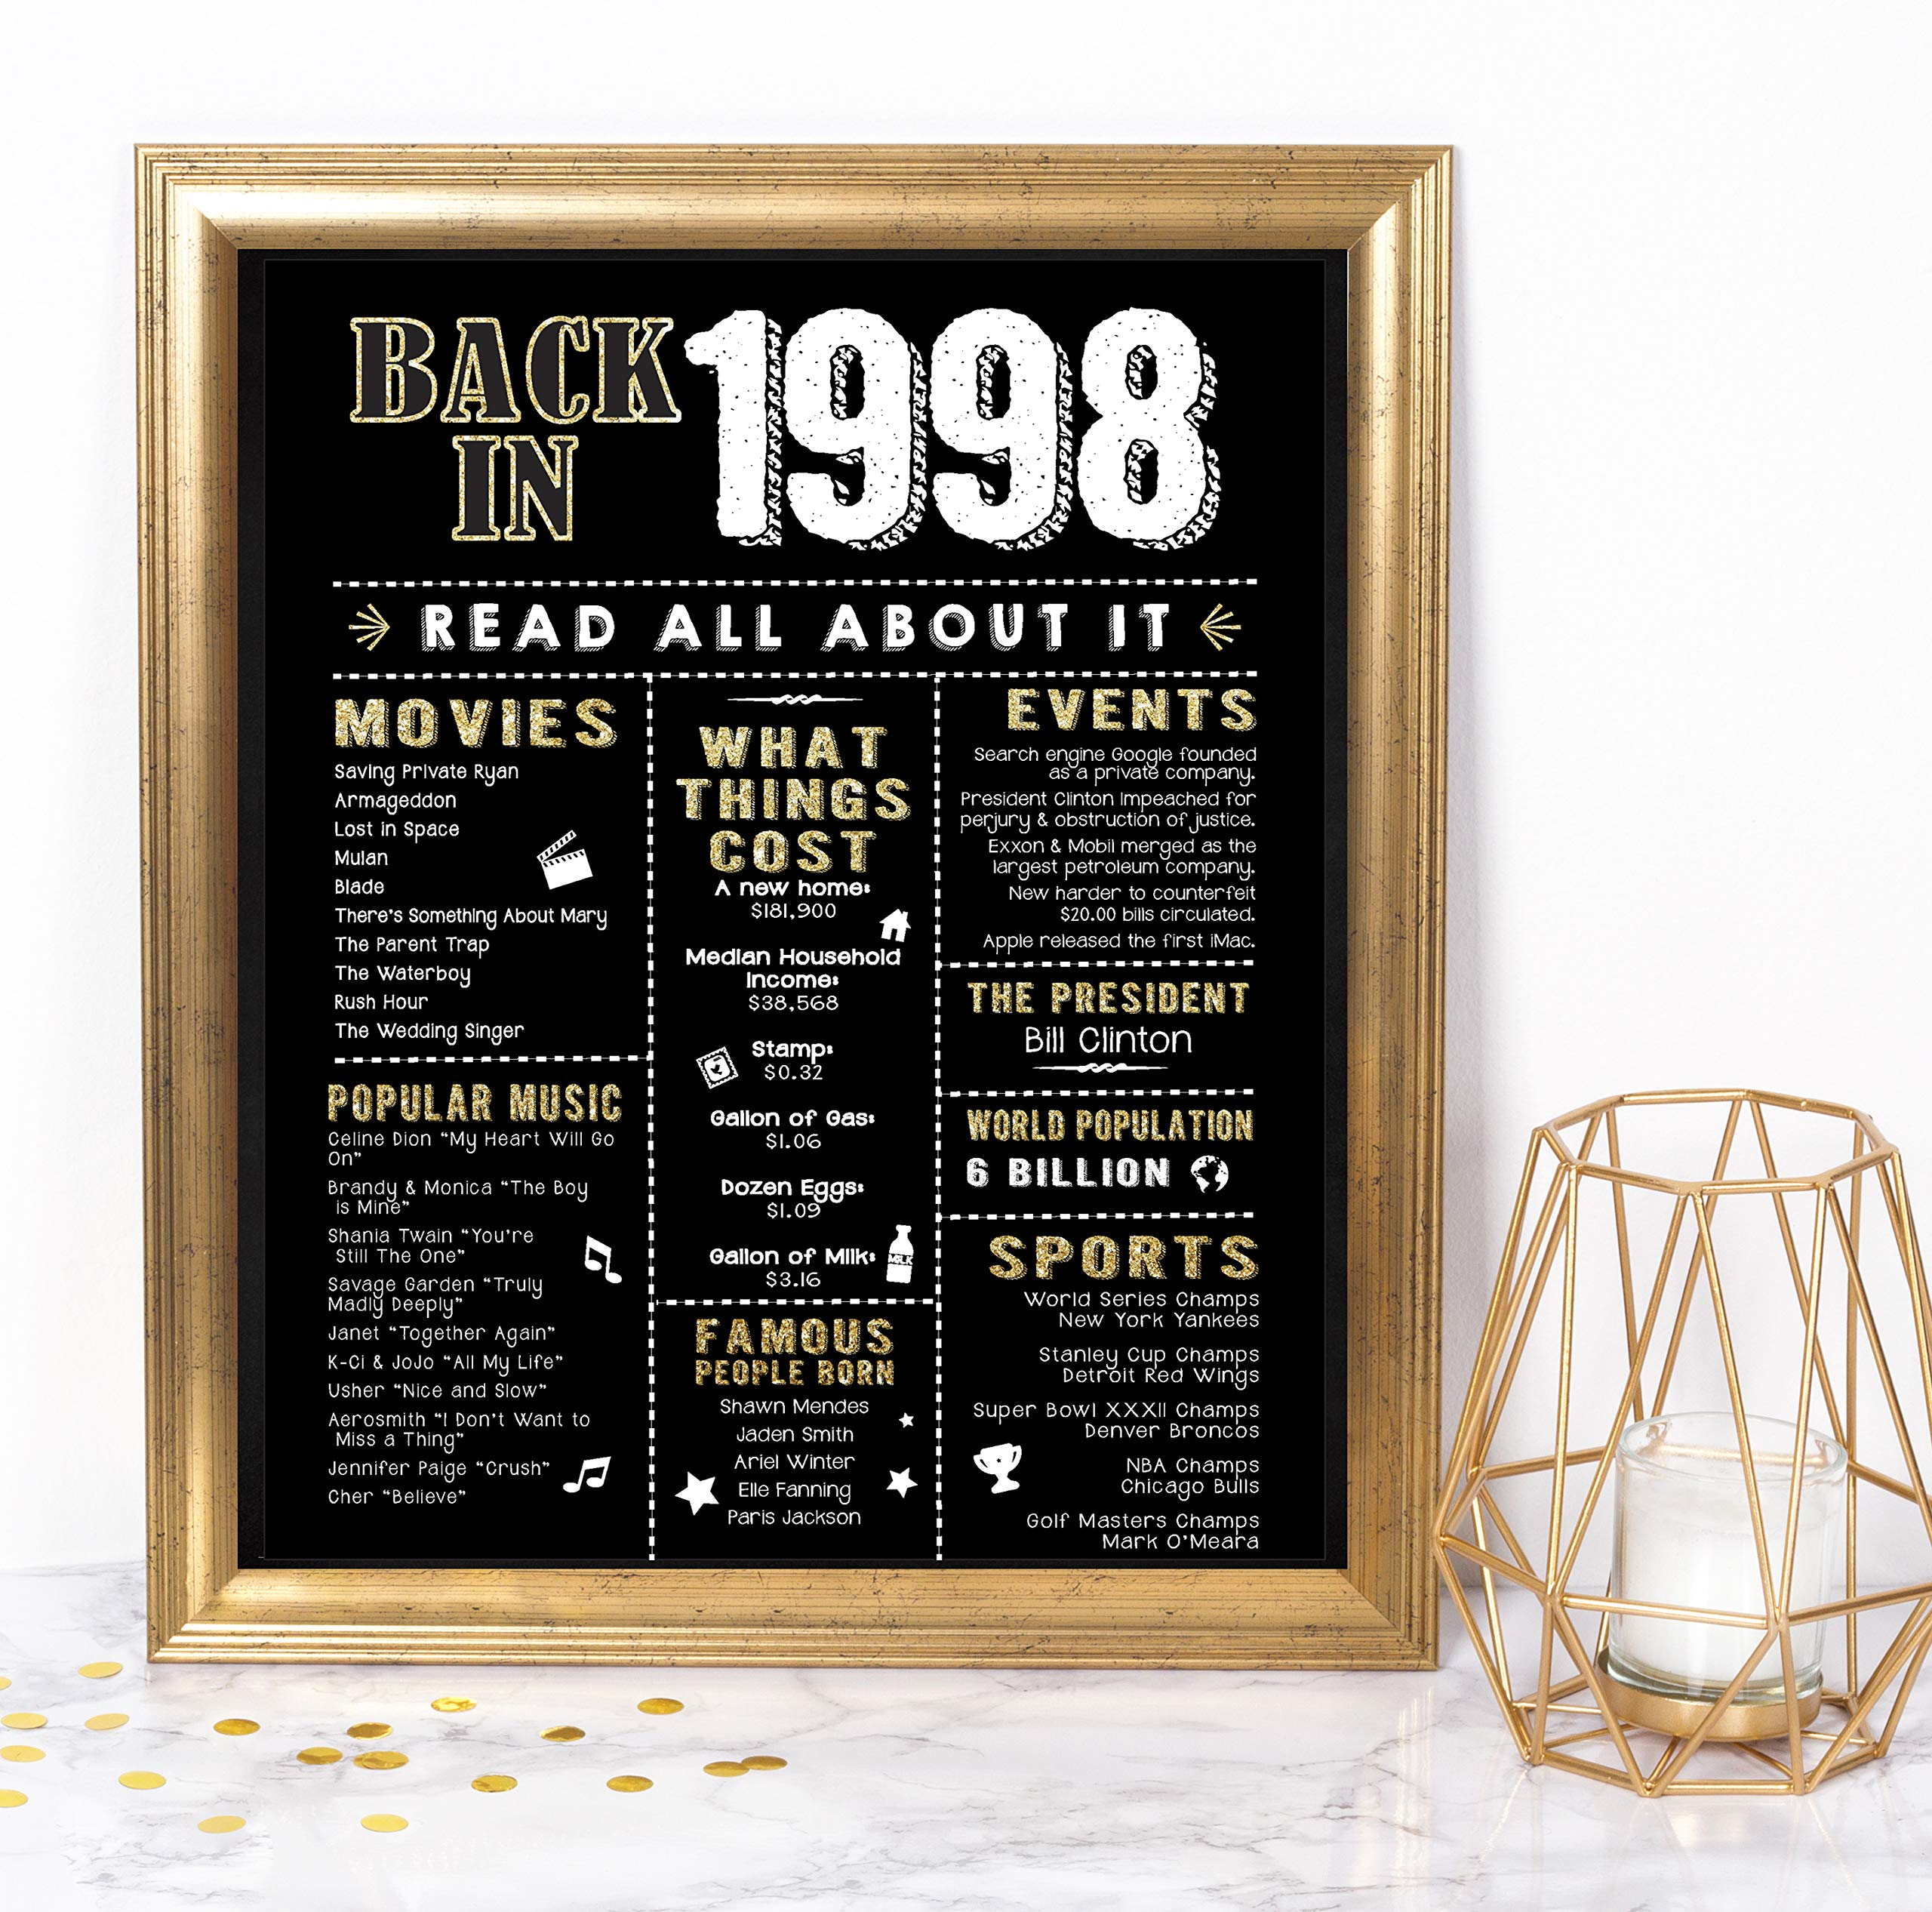 Katie Doodle 21st Birthday Decorations Gifts for Her or Him | Includes 8x10 Back-in-1998 Sign [Unframed], BD021, Black/Gold by Katie Doodle